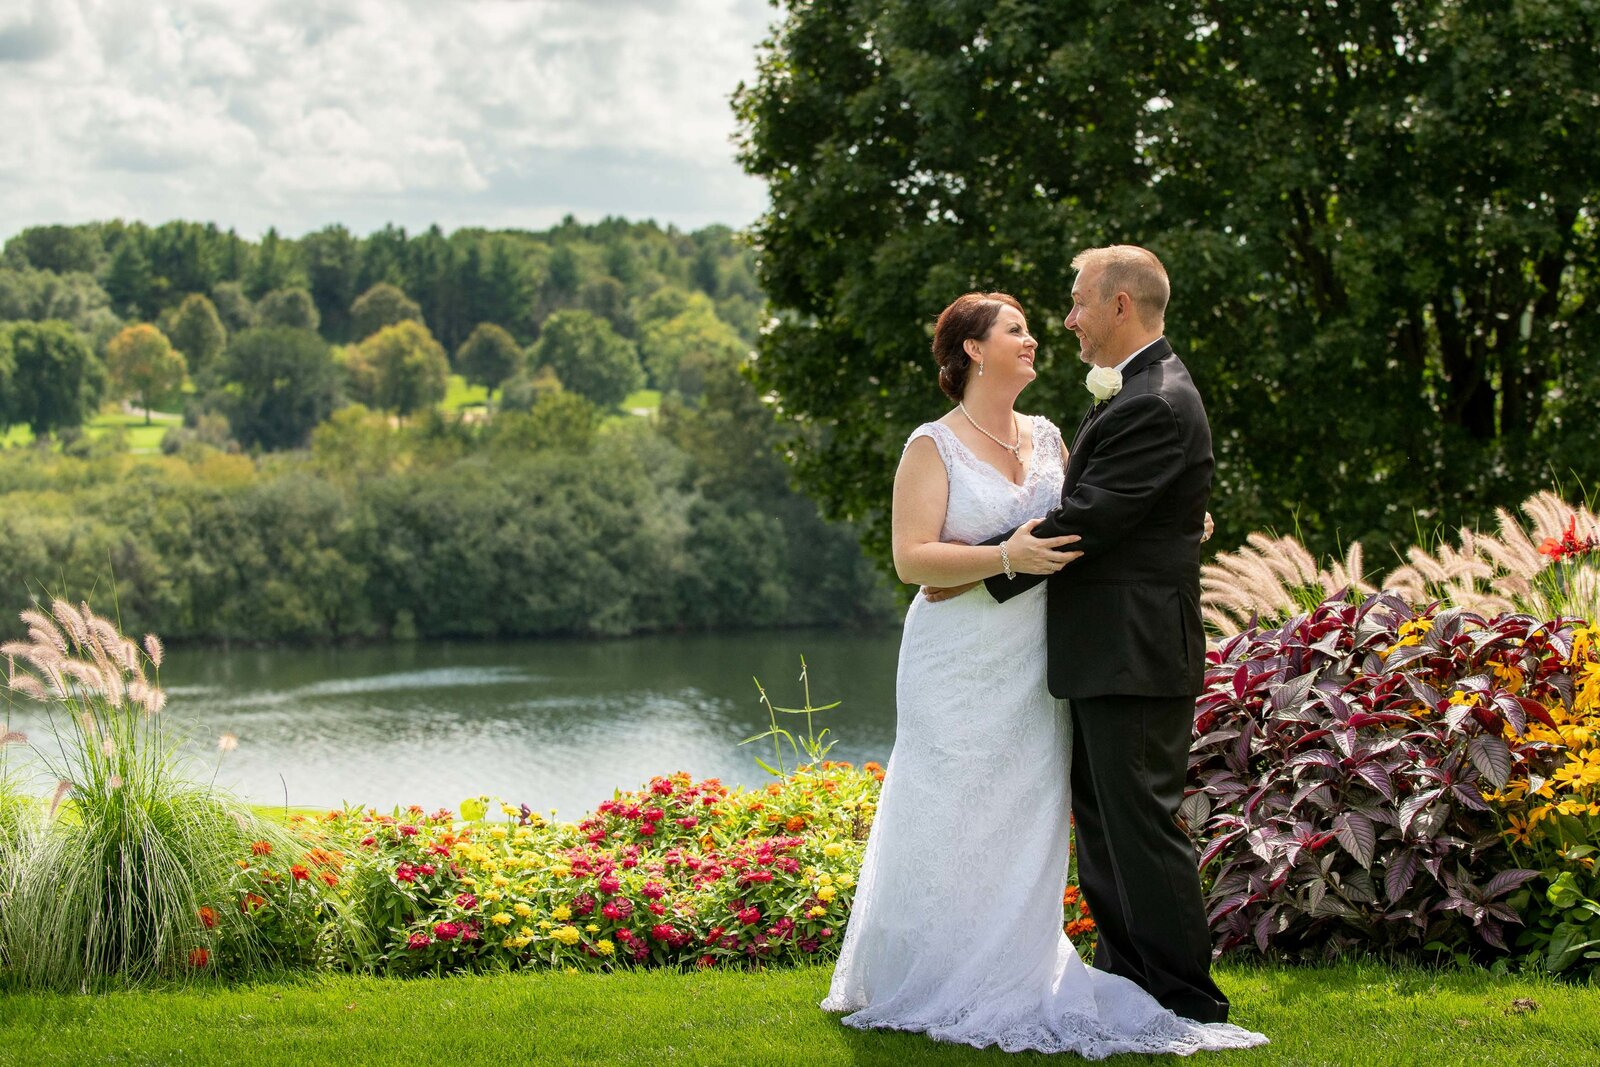 wedding-reception-lake-geneva-bride-groom